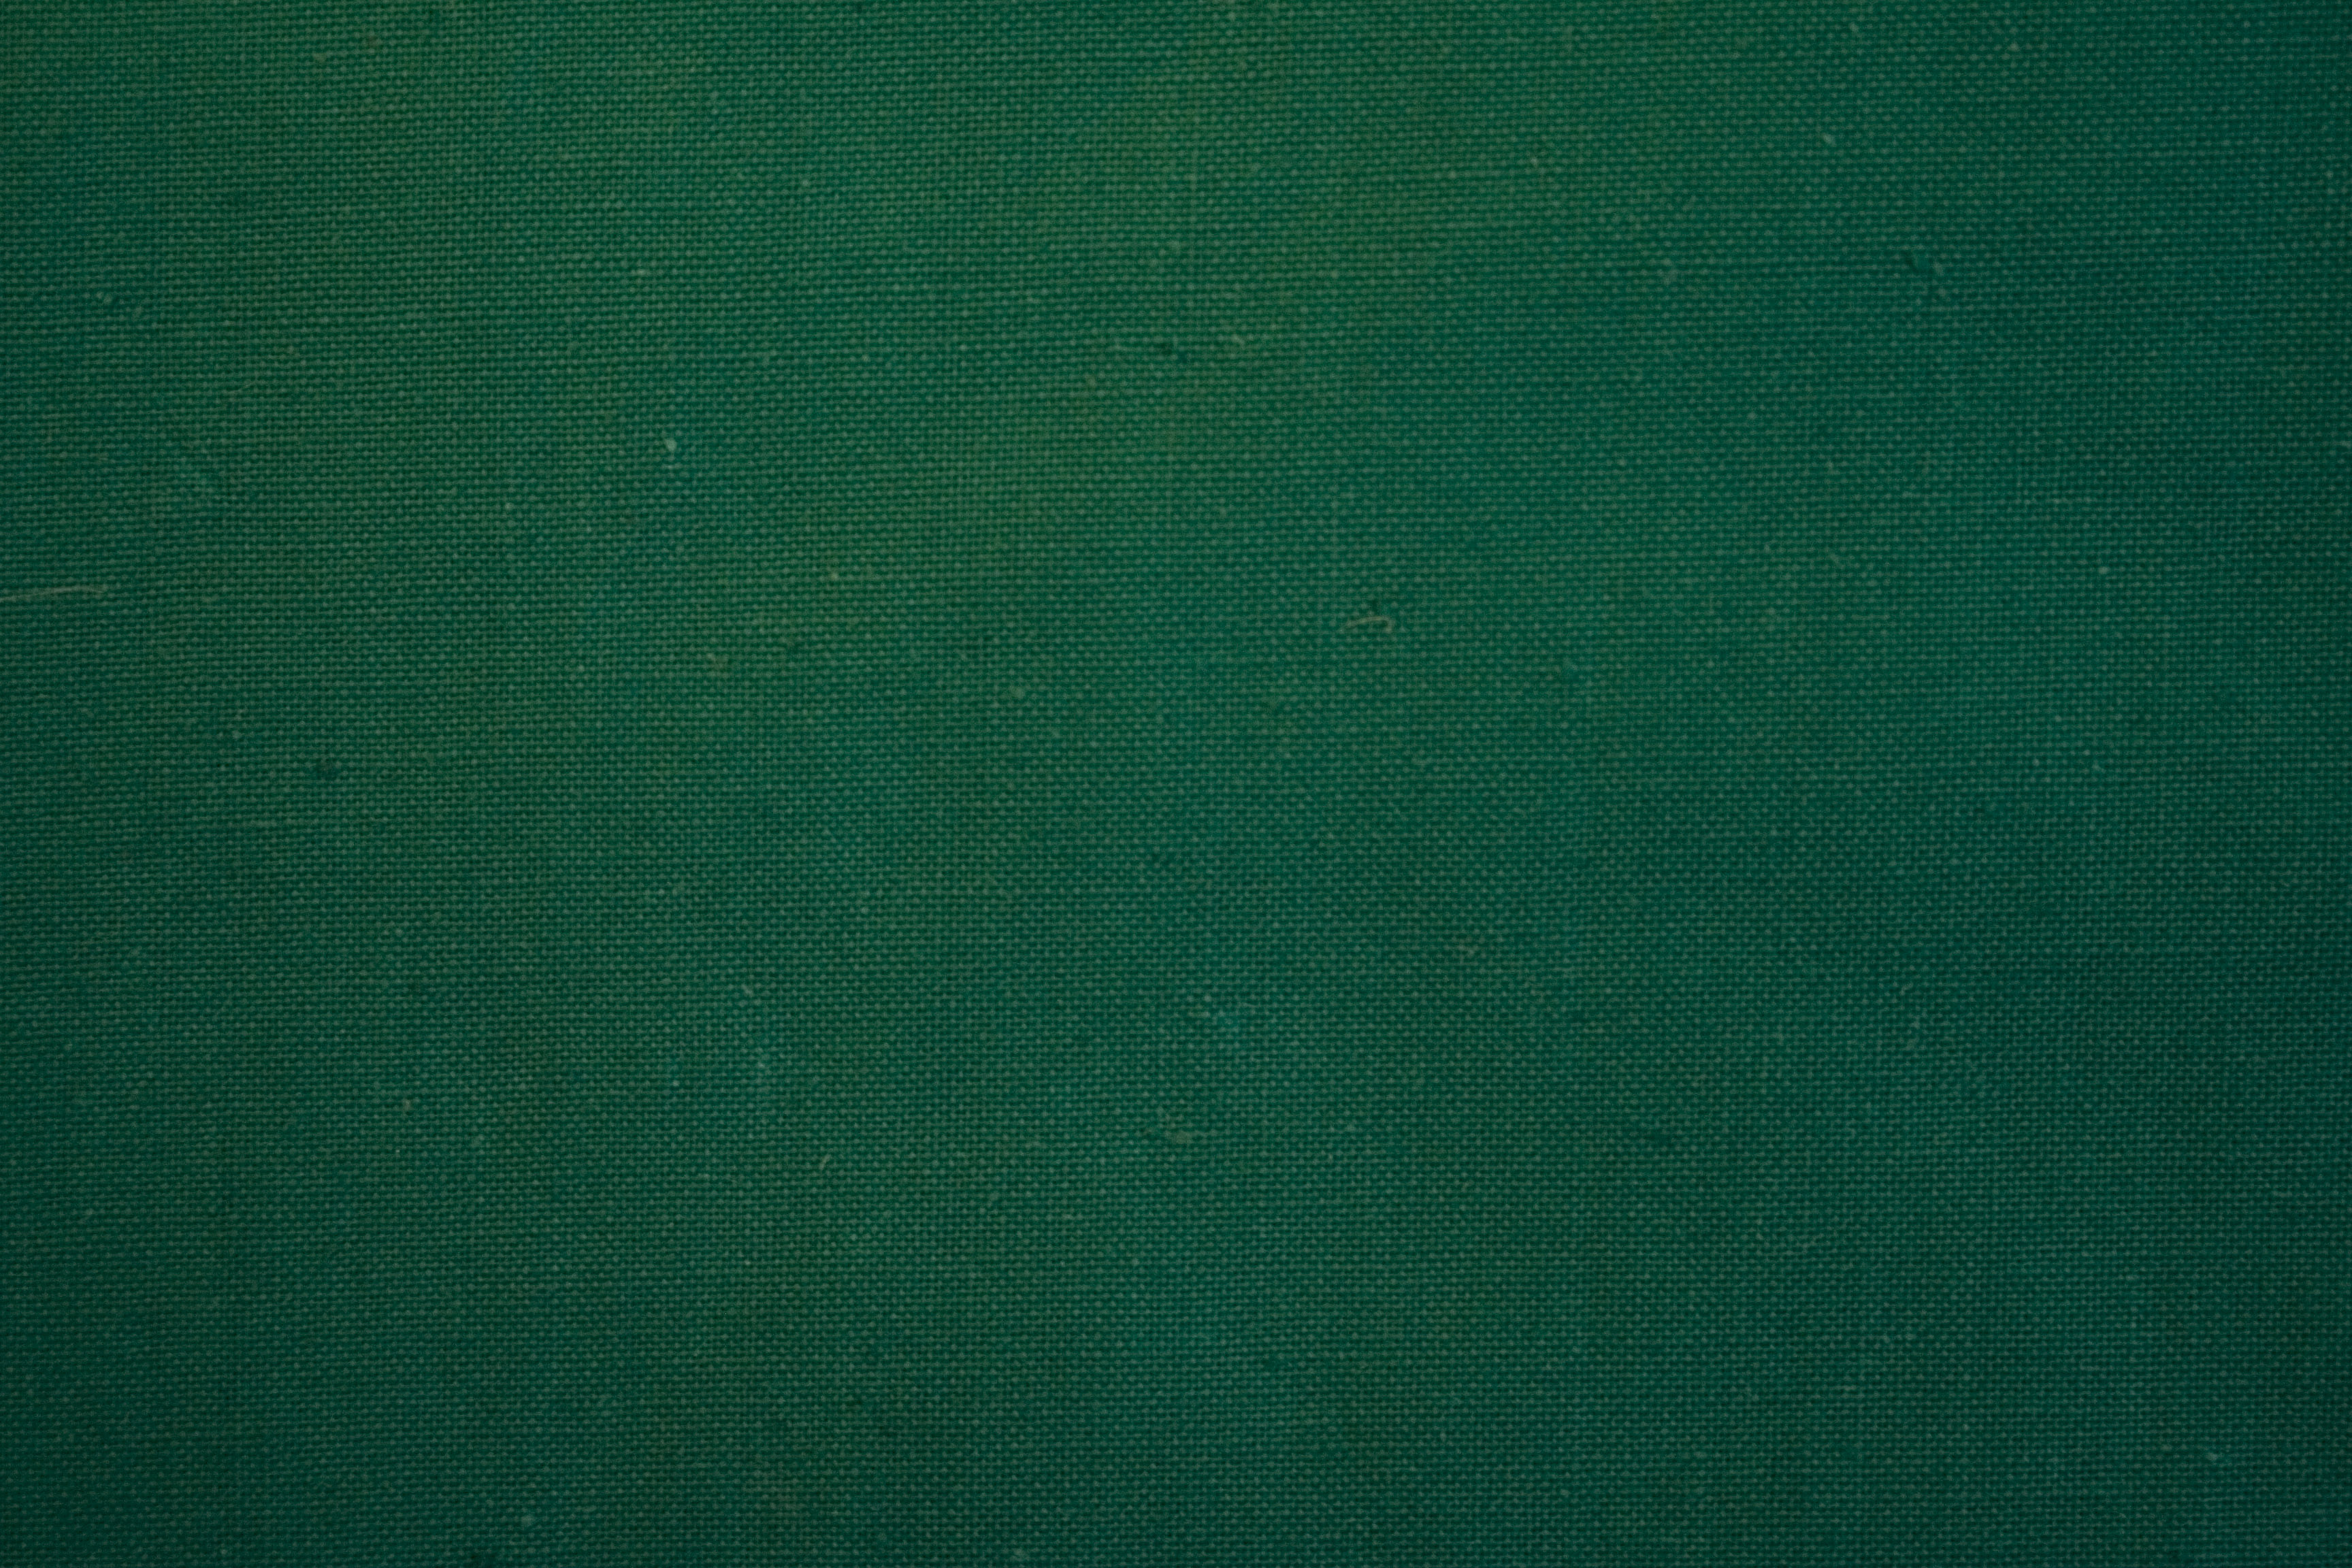 Green Textile Stock Texture Textures For Photoshop Free